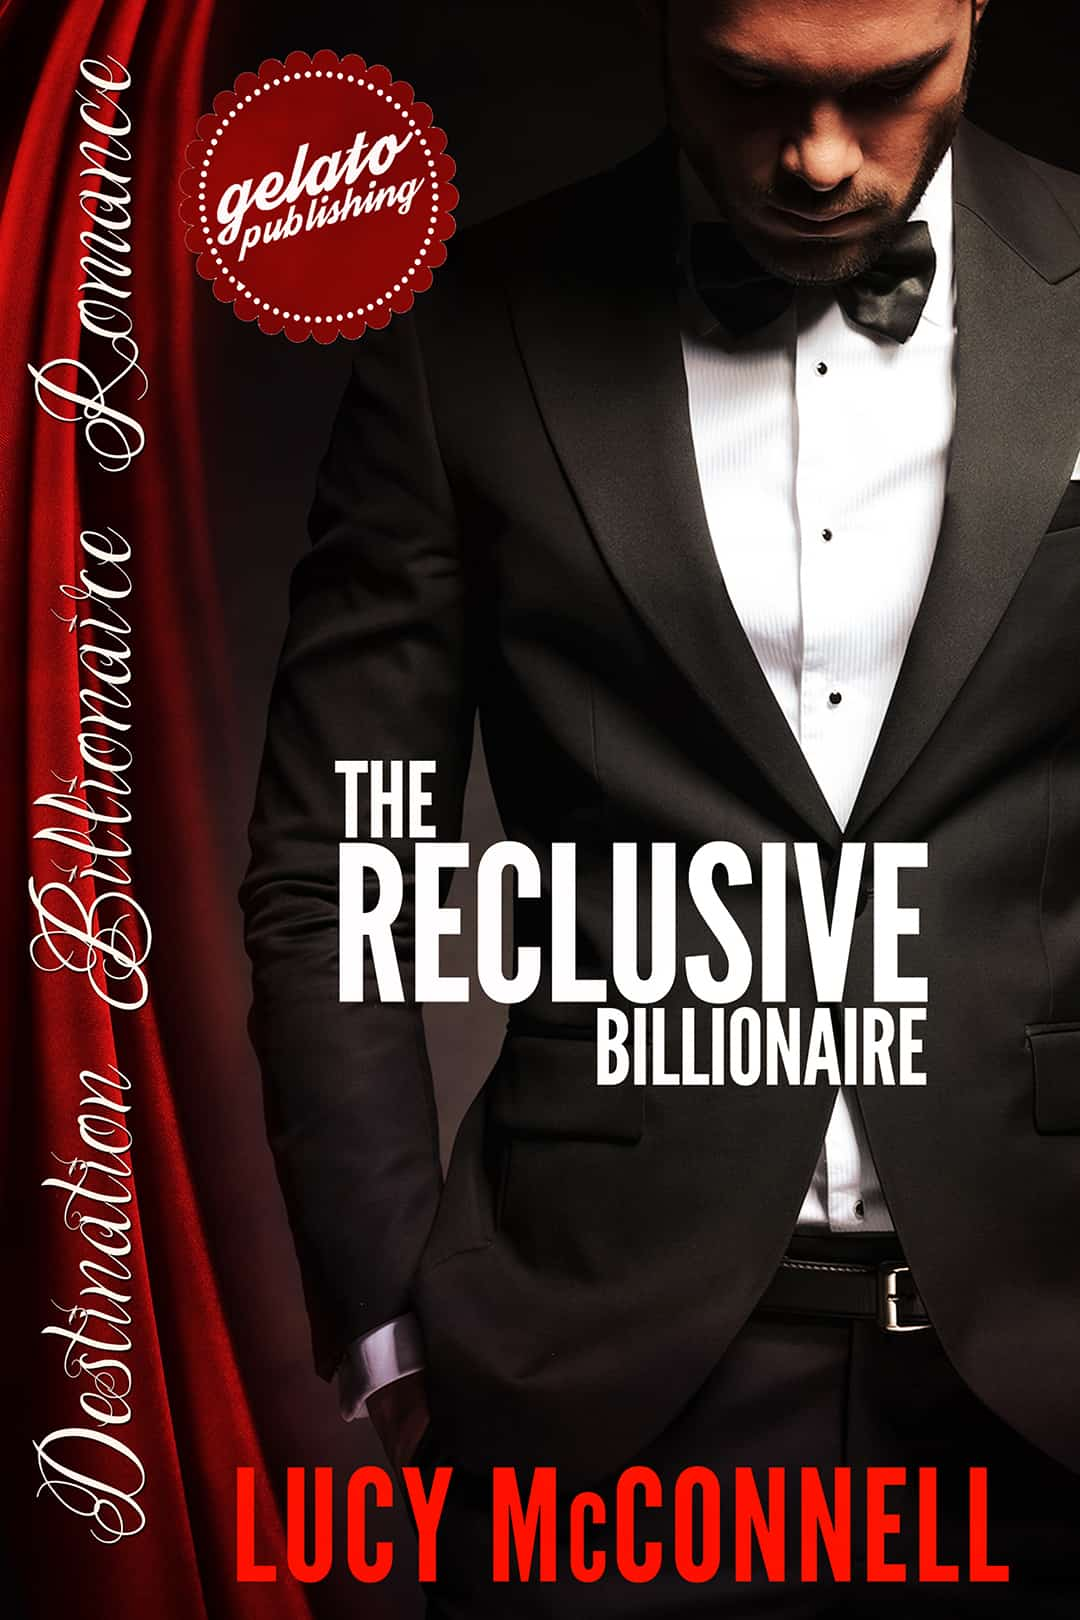 Free Ebooks For Kindle - Reclusive Billionaire